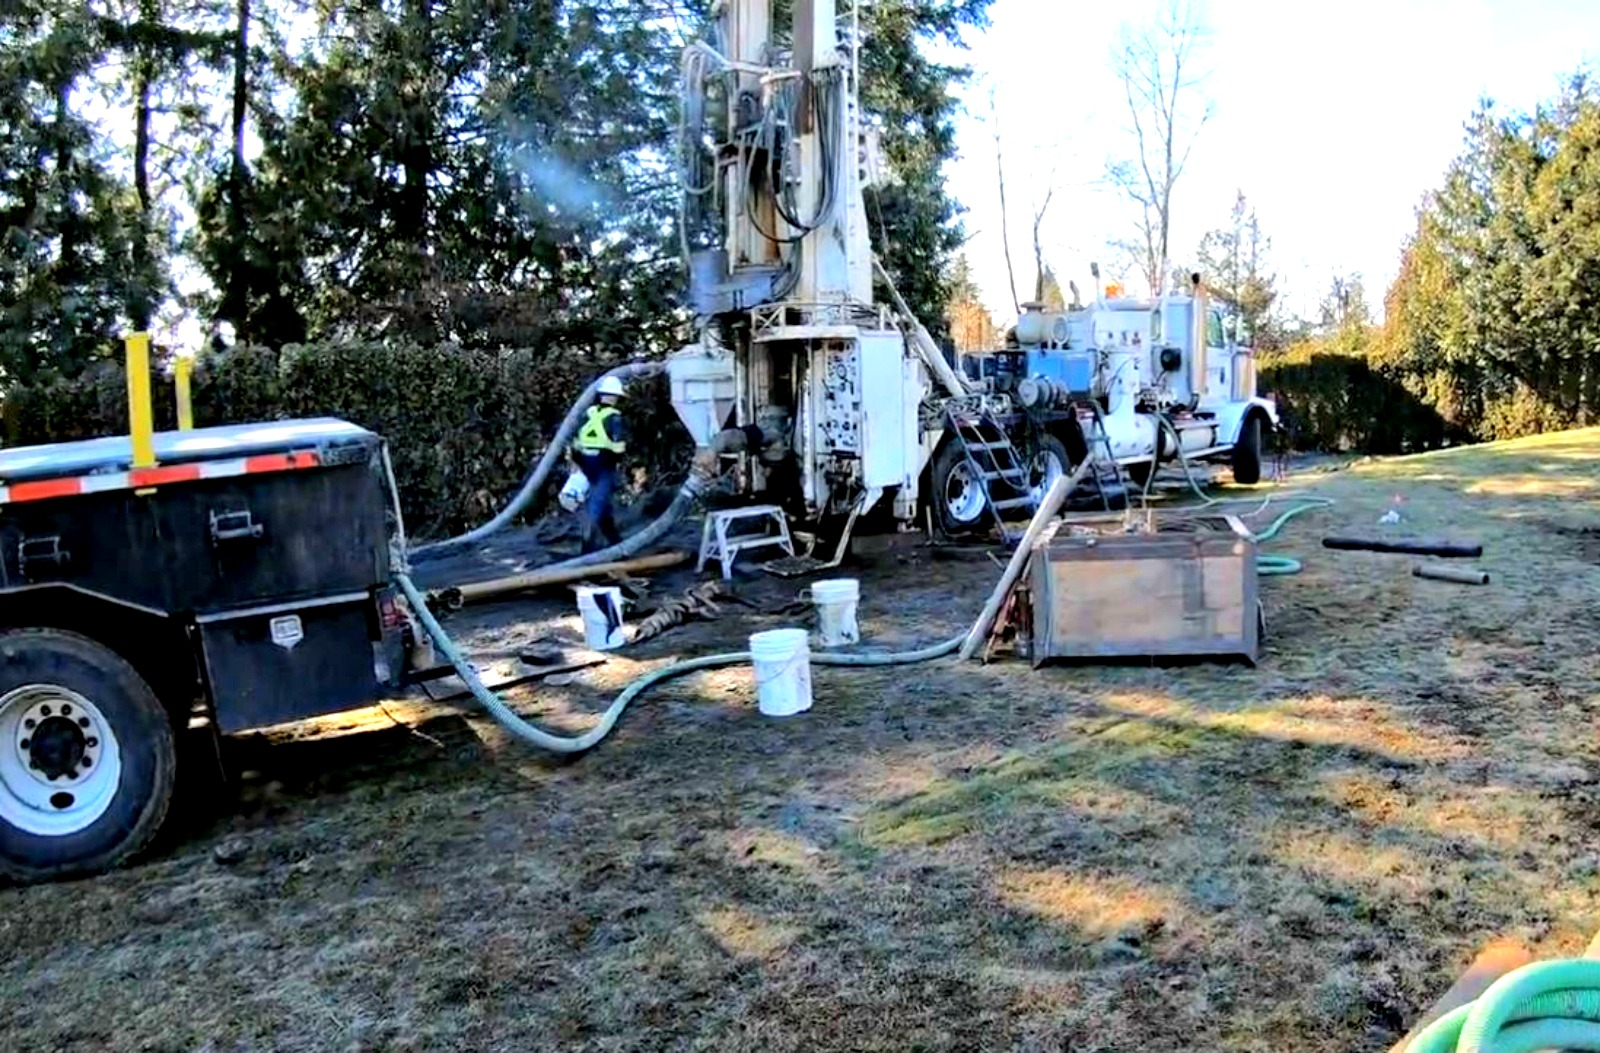 Drilling in New Wesminster with Dual Rotary Drilling DR at Schara Tzedeck Cemetery - 2345 Marine Drive New Westminster, Greater Vancouver Regional District, British Columbia, Canada